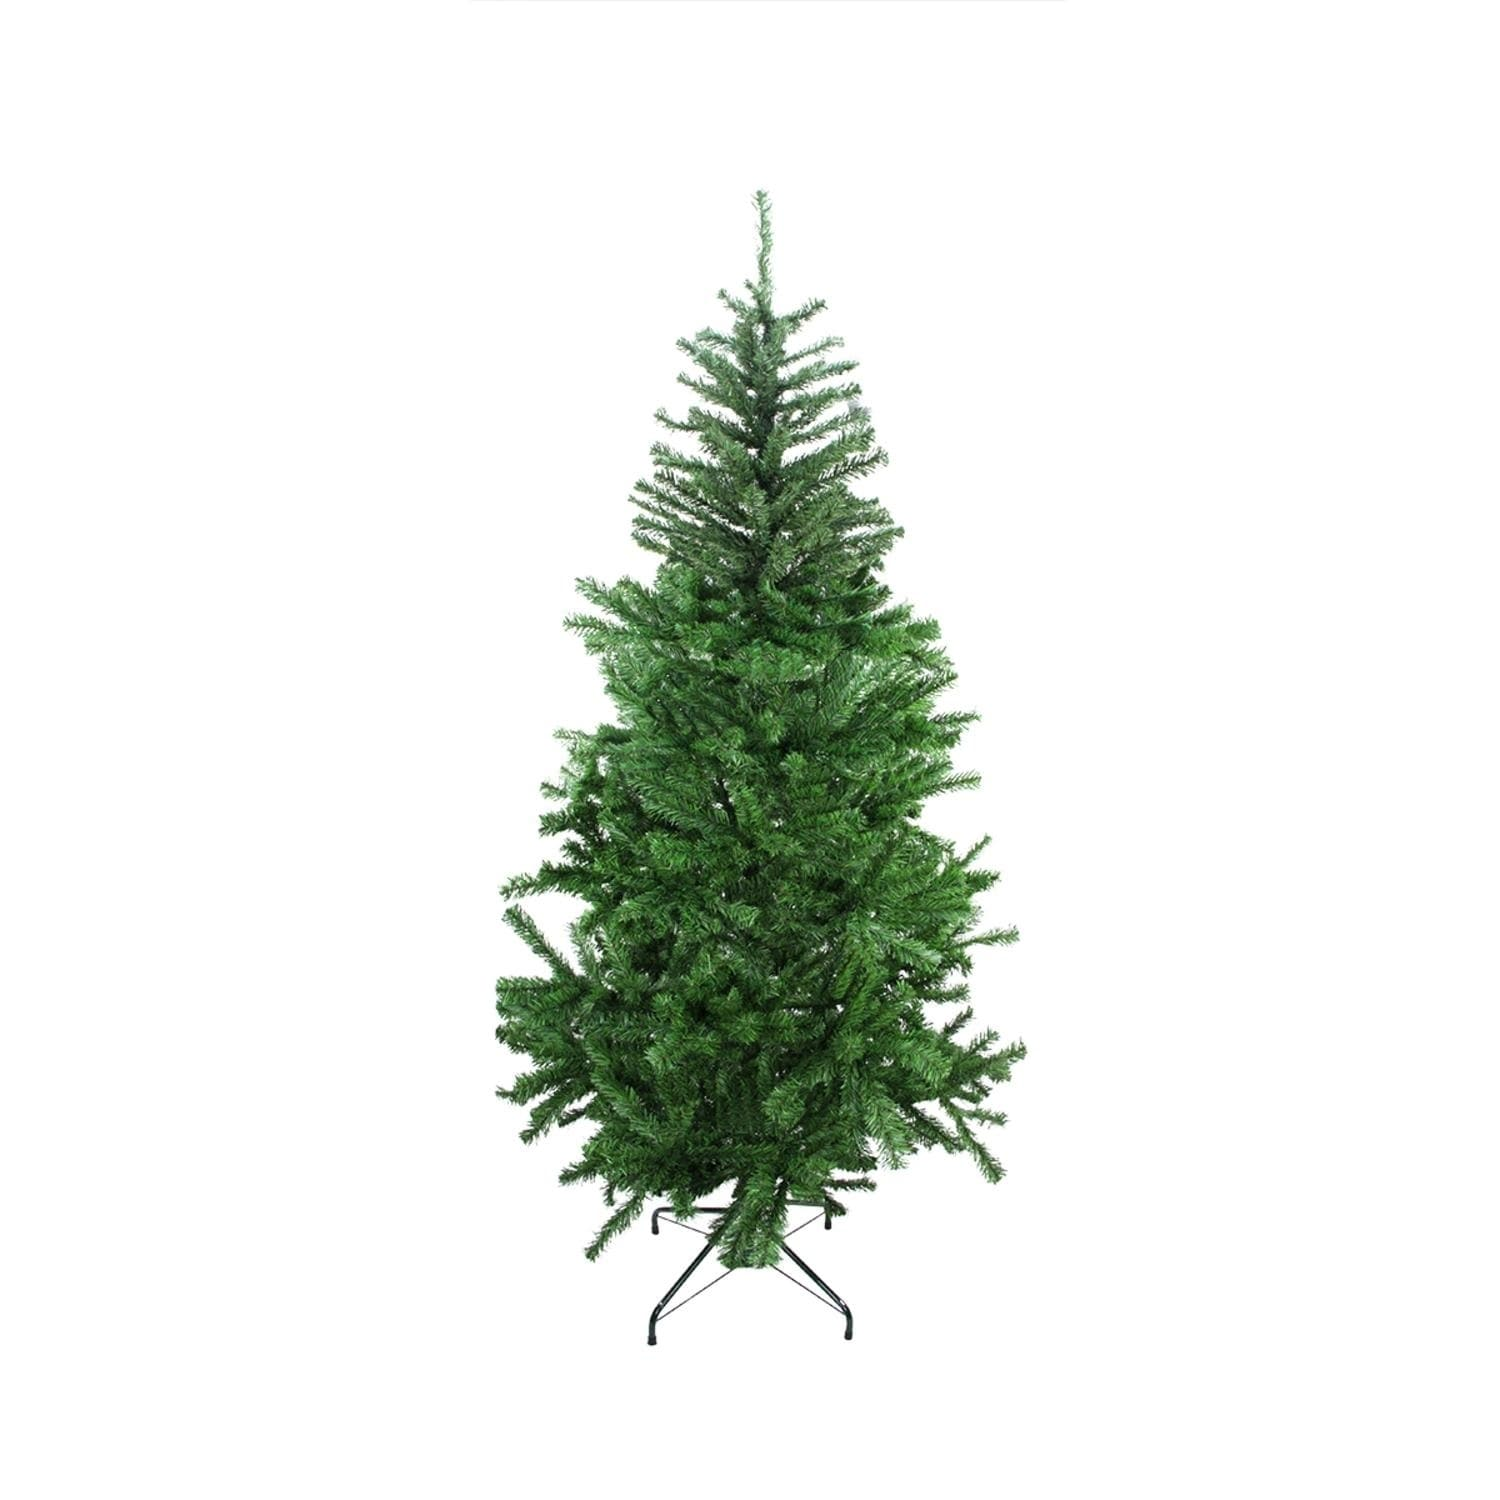 DARICE 6.5' Two-Tone Balsam Fir Artificial Christmas Tree...